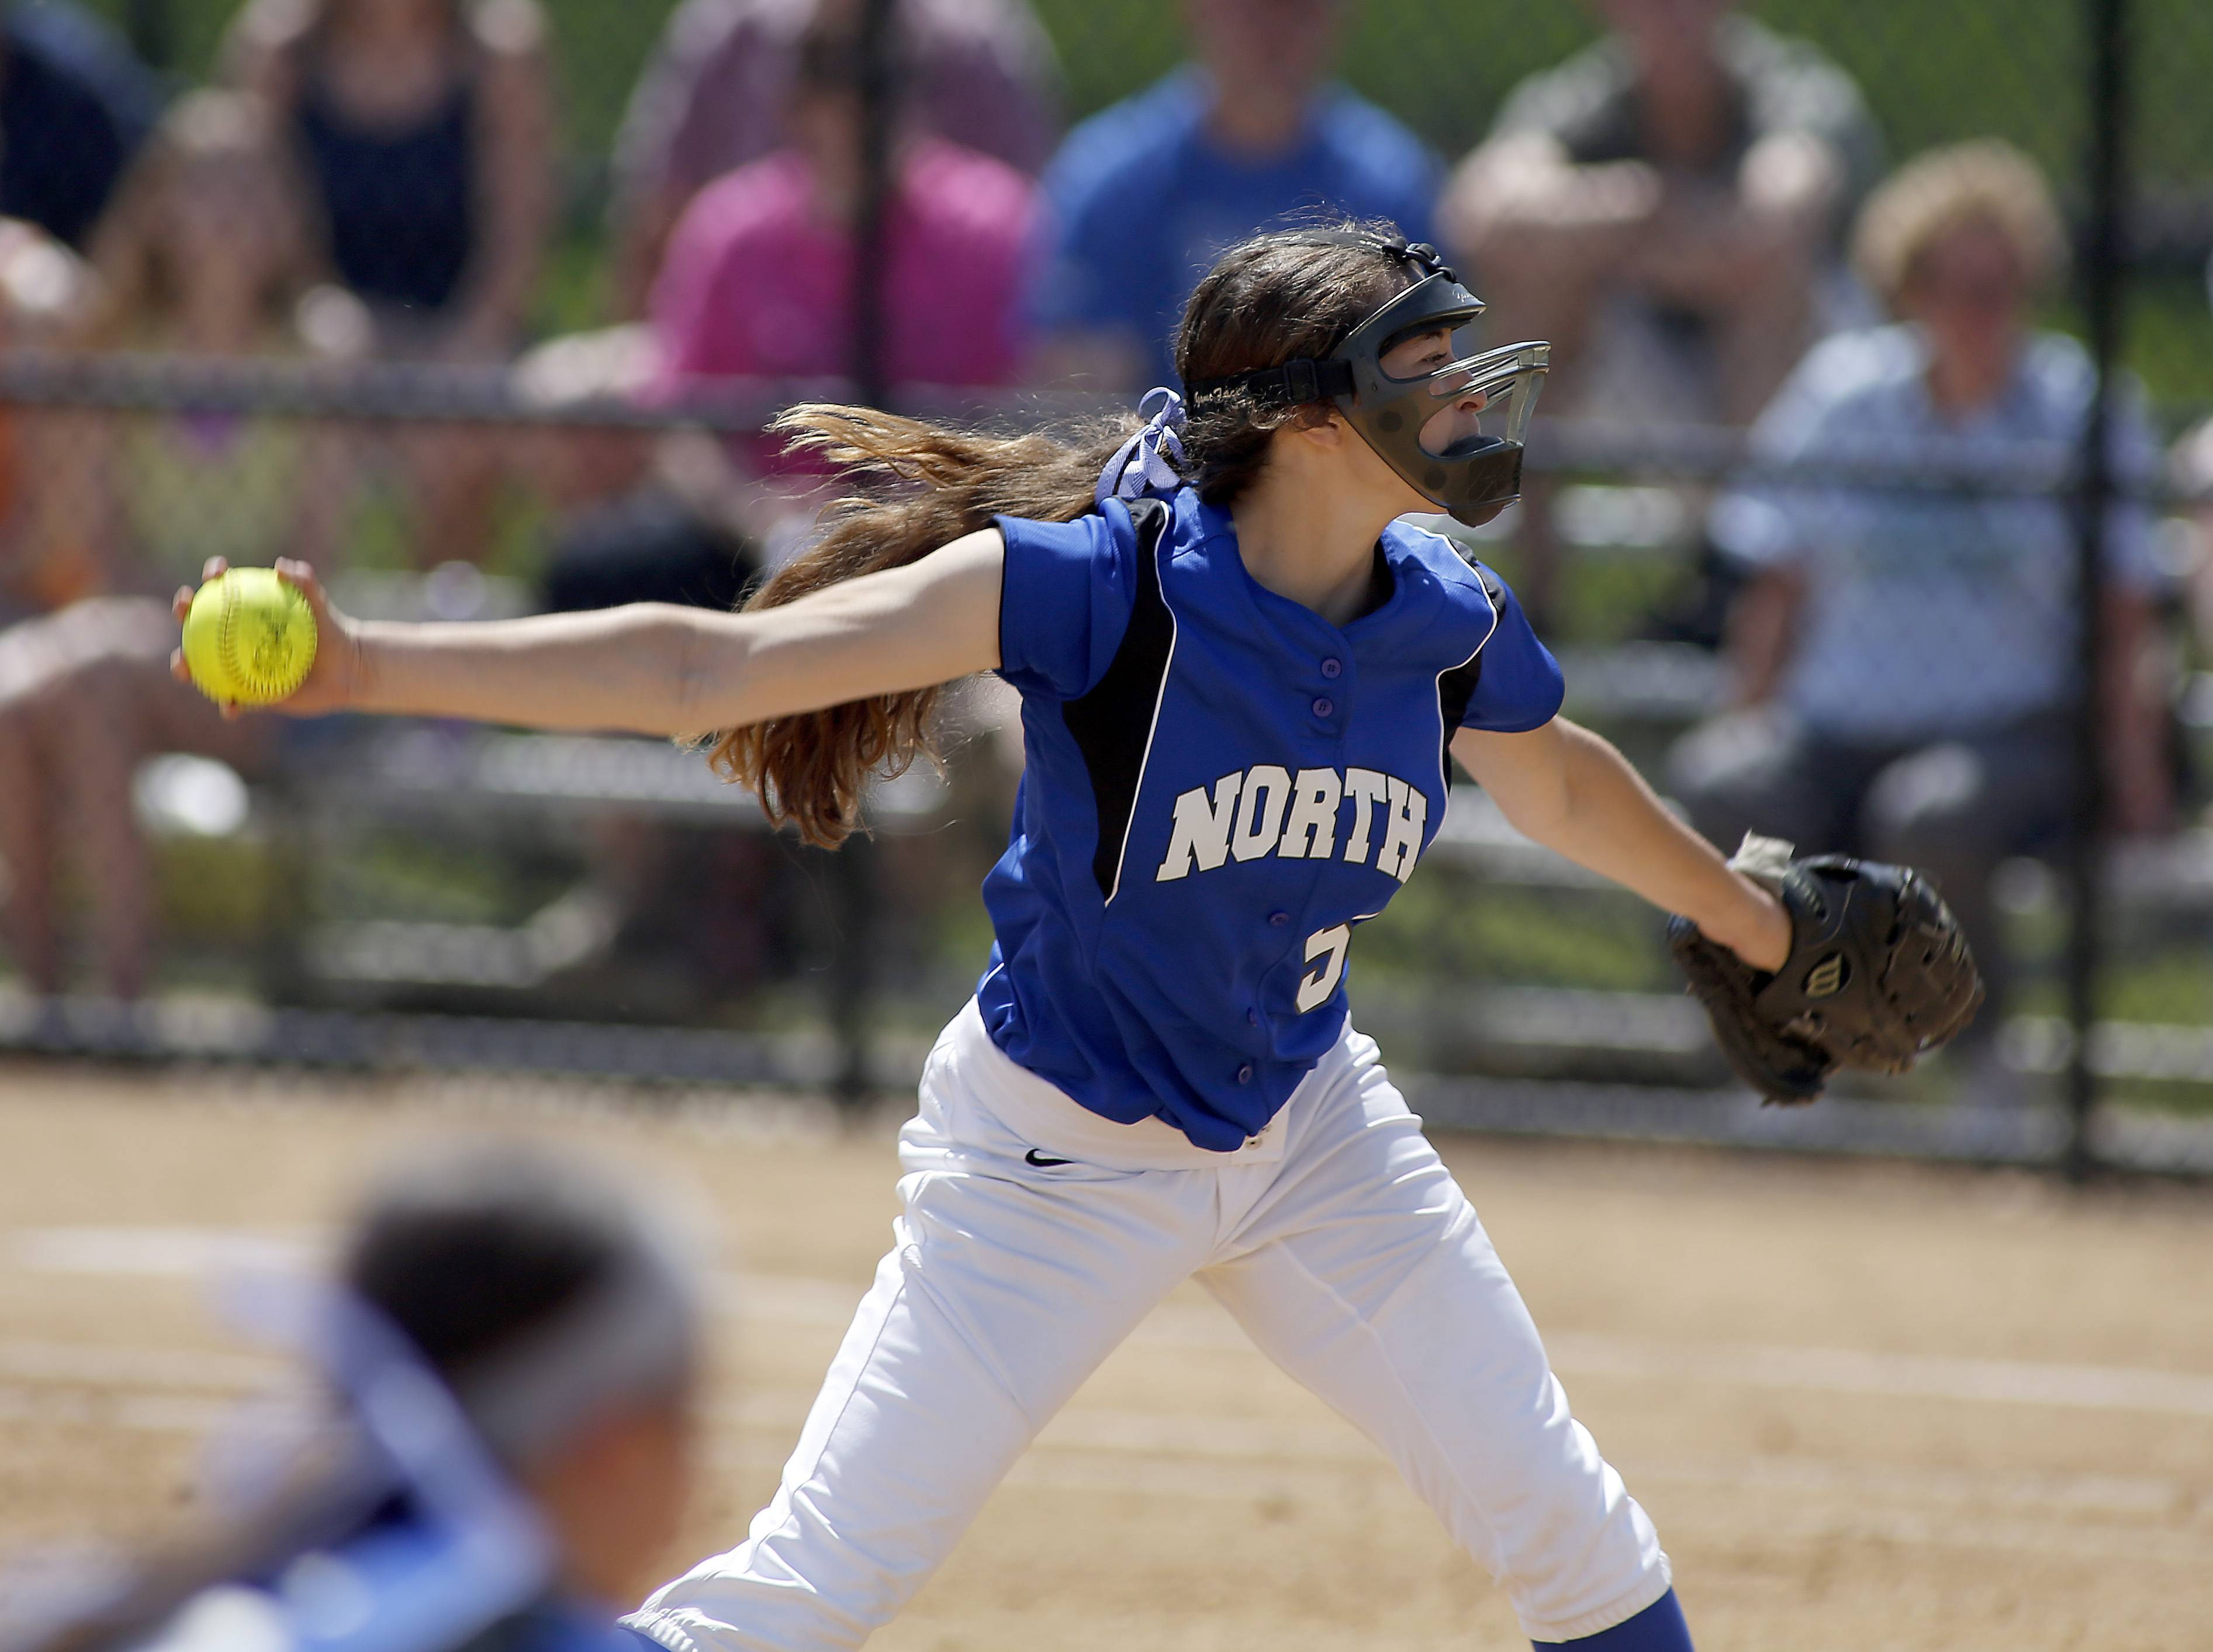 St. Charles North's Sabrina Rabin delivers to the plate against Bartlett in the championship game of Class 4A Addison Trail regional Saturday.